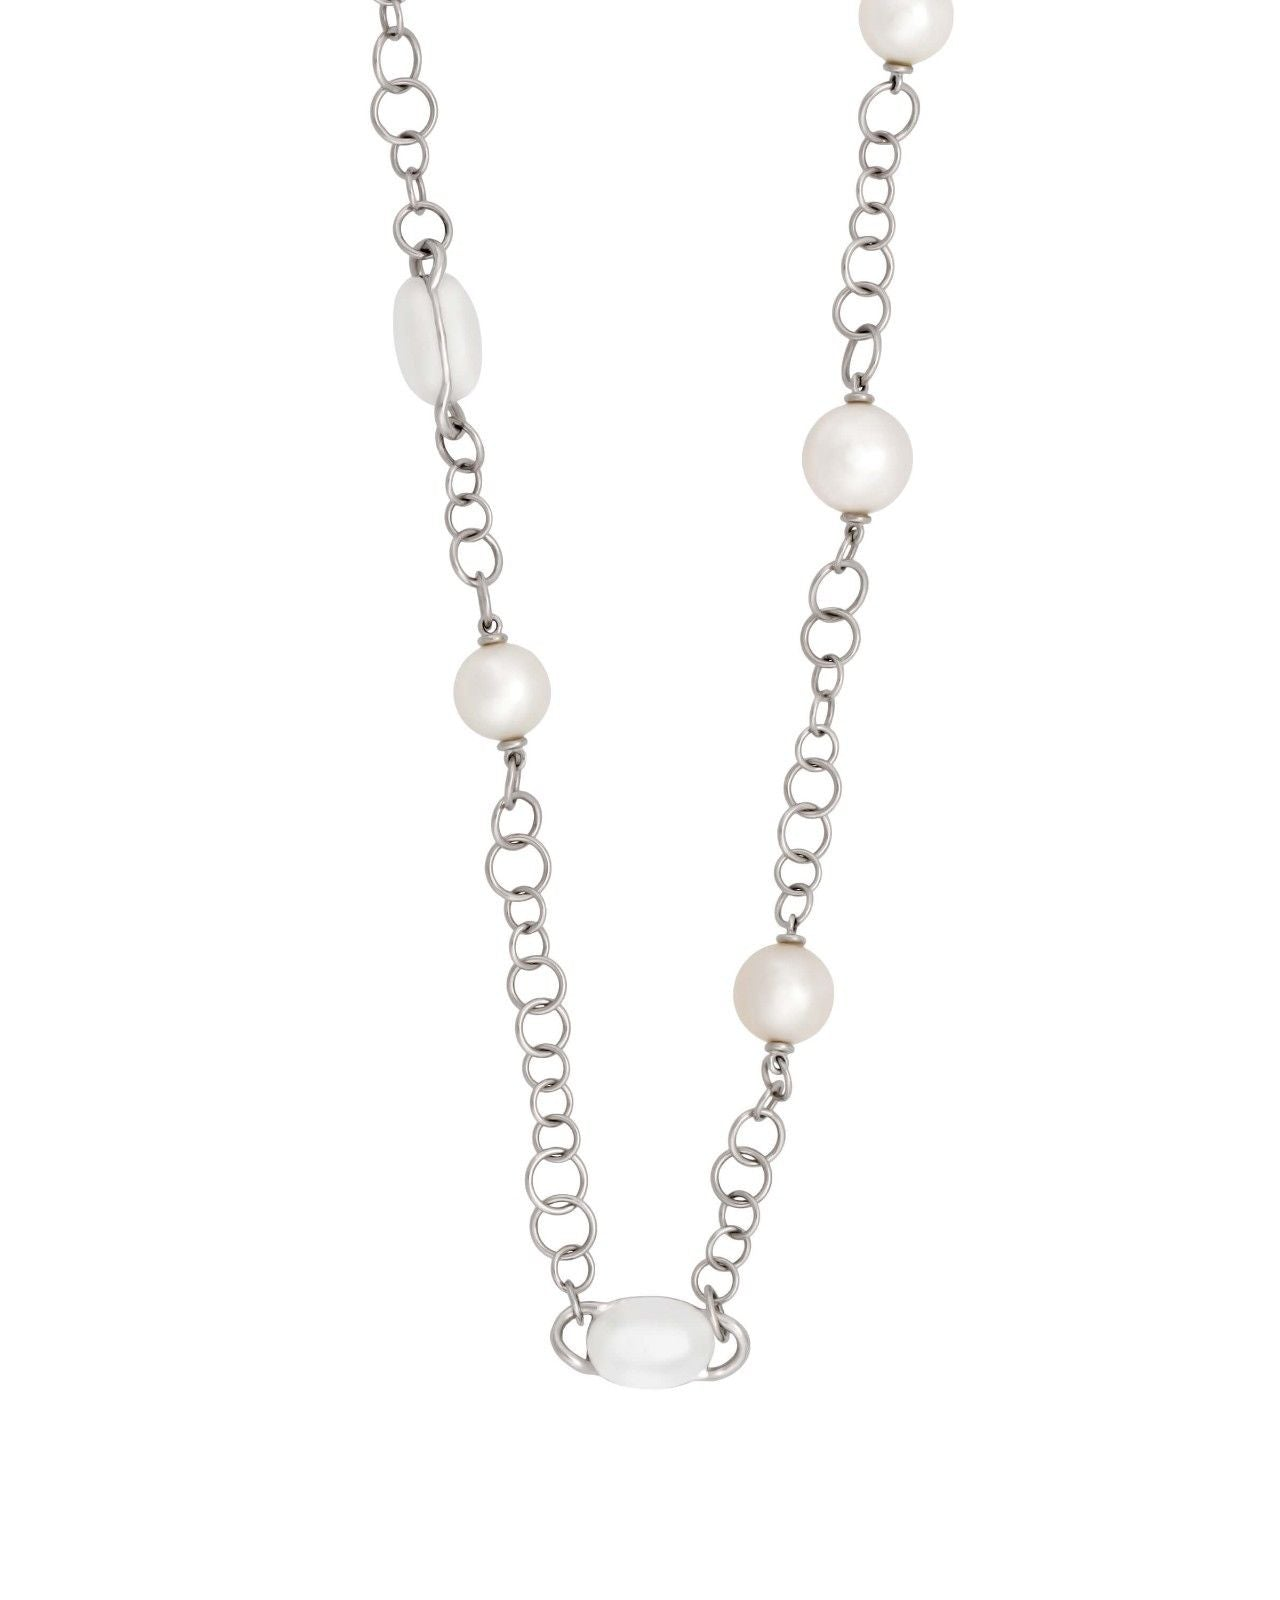 Mimi Milano Necklace In 18K White Gold, Milky Quartz White Pearls C267B1QL